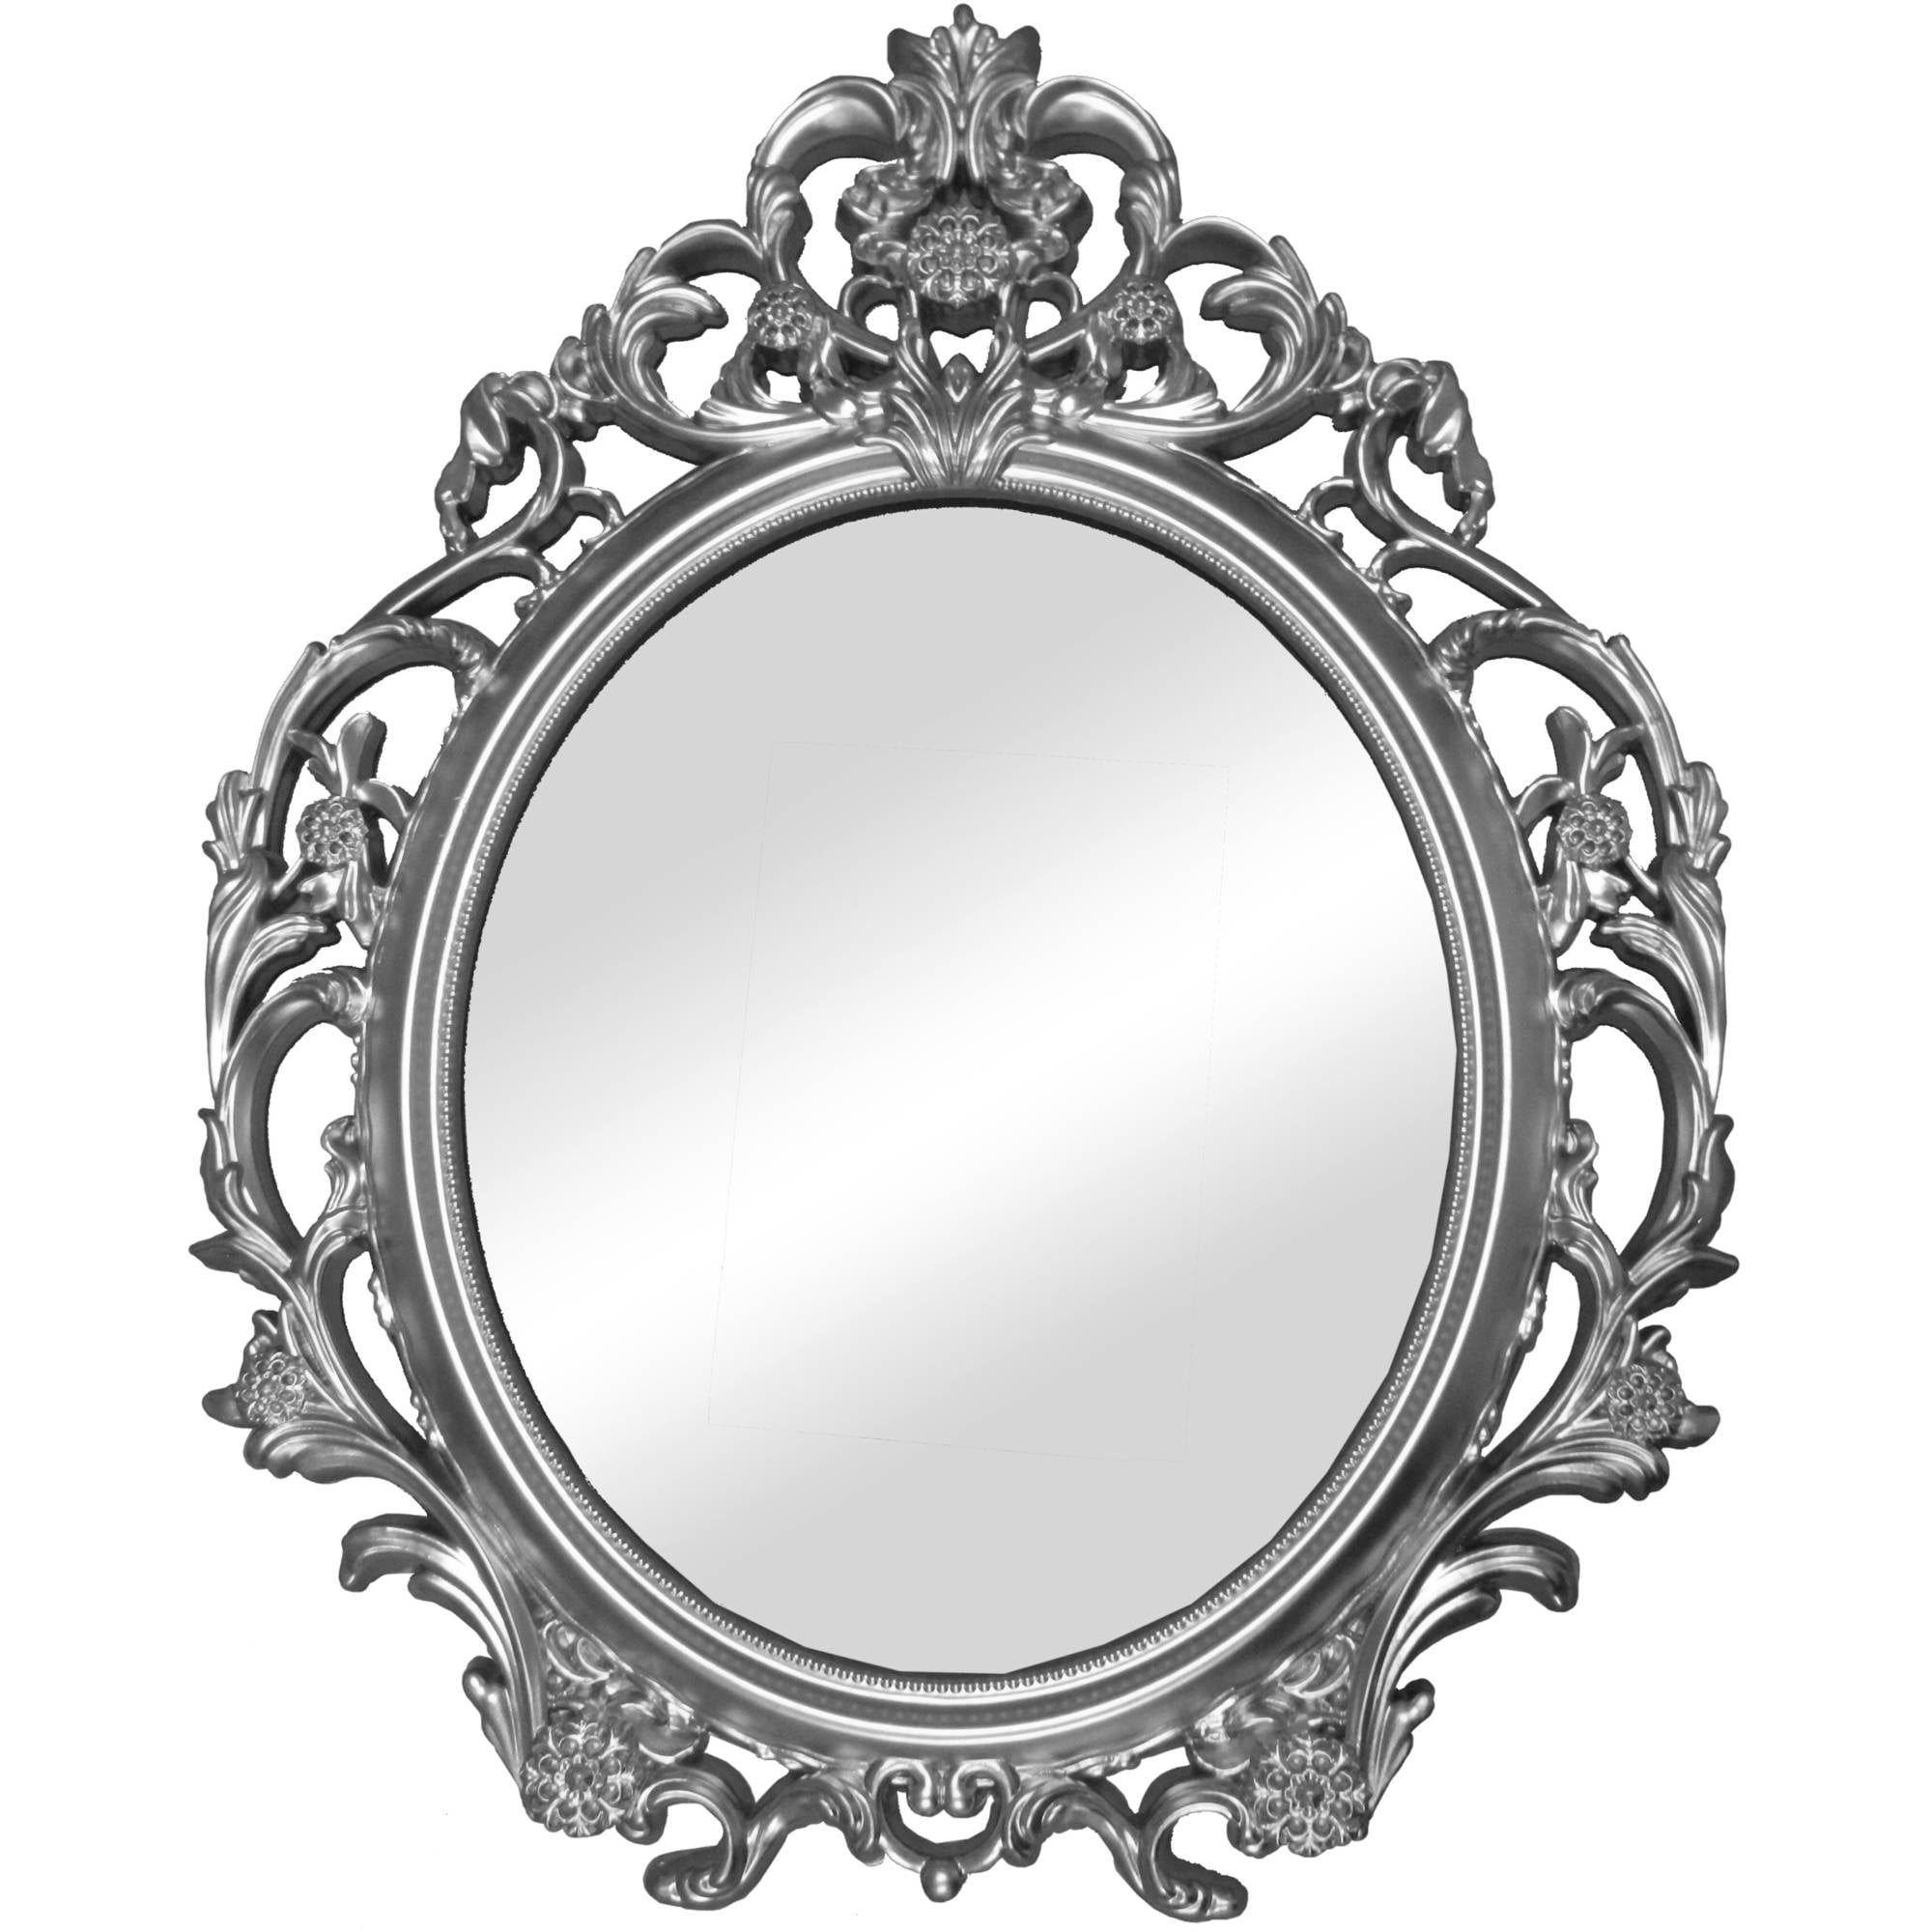 The Coveteur Antique Mirror Walls: Better Homes & Gardens Ornate Baroque Wall Mirror